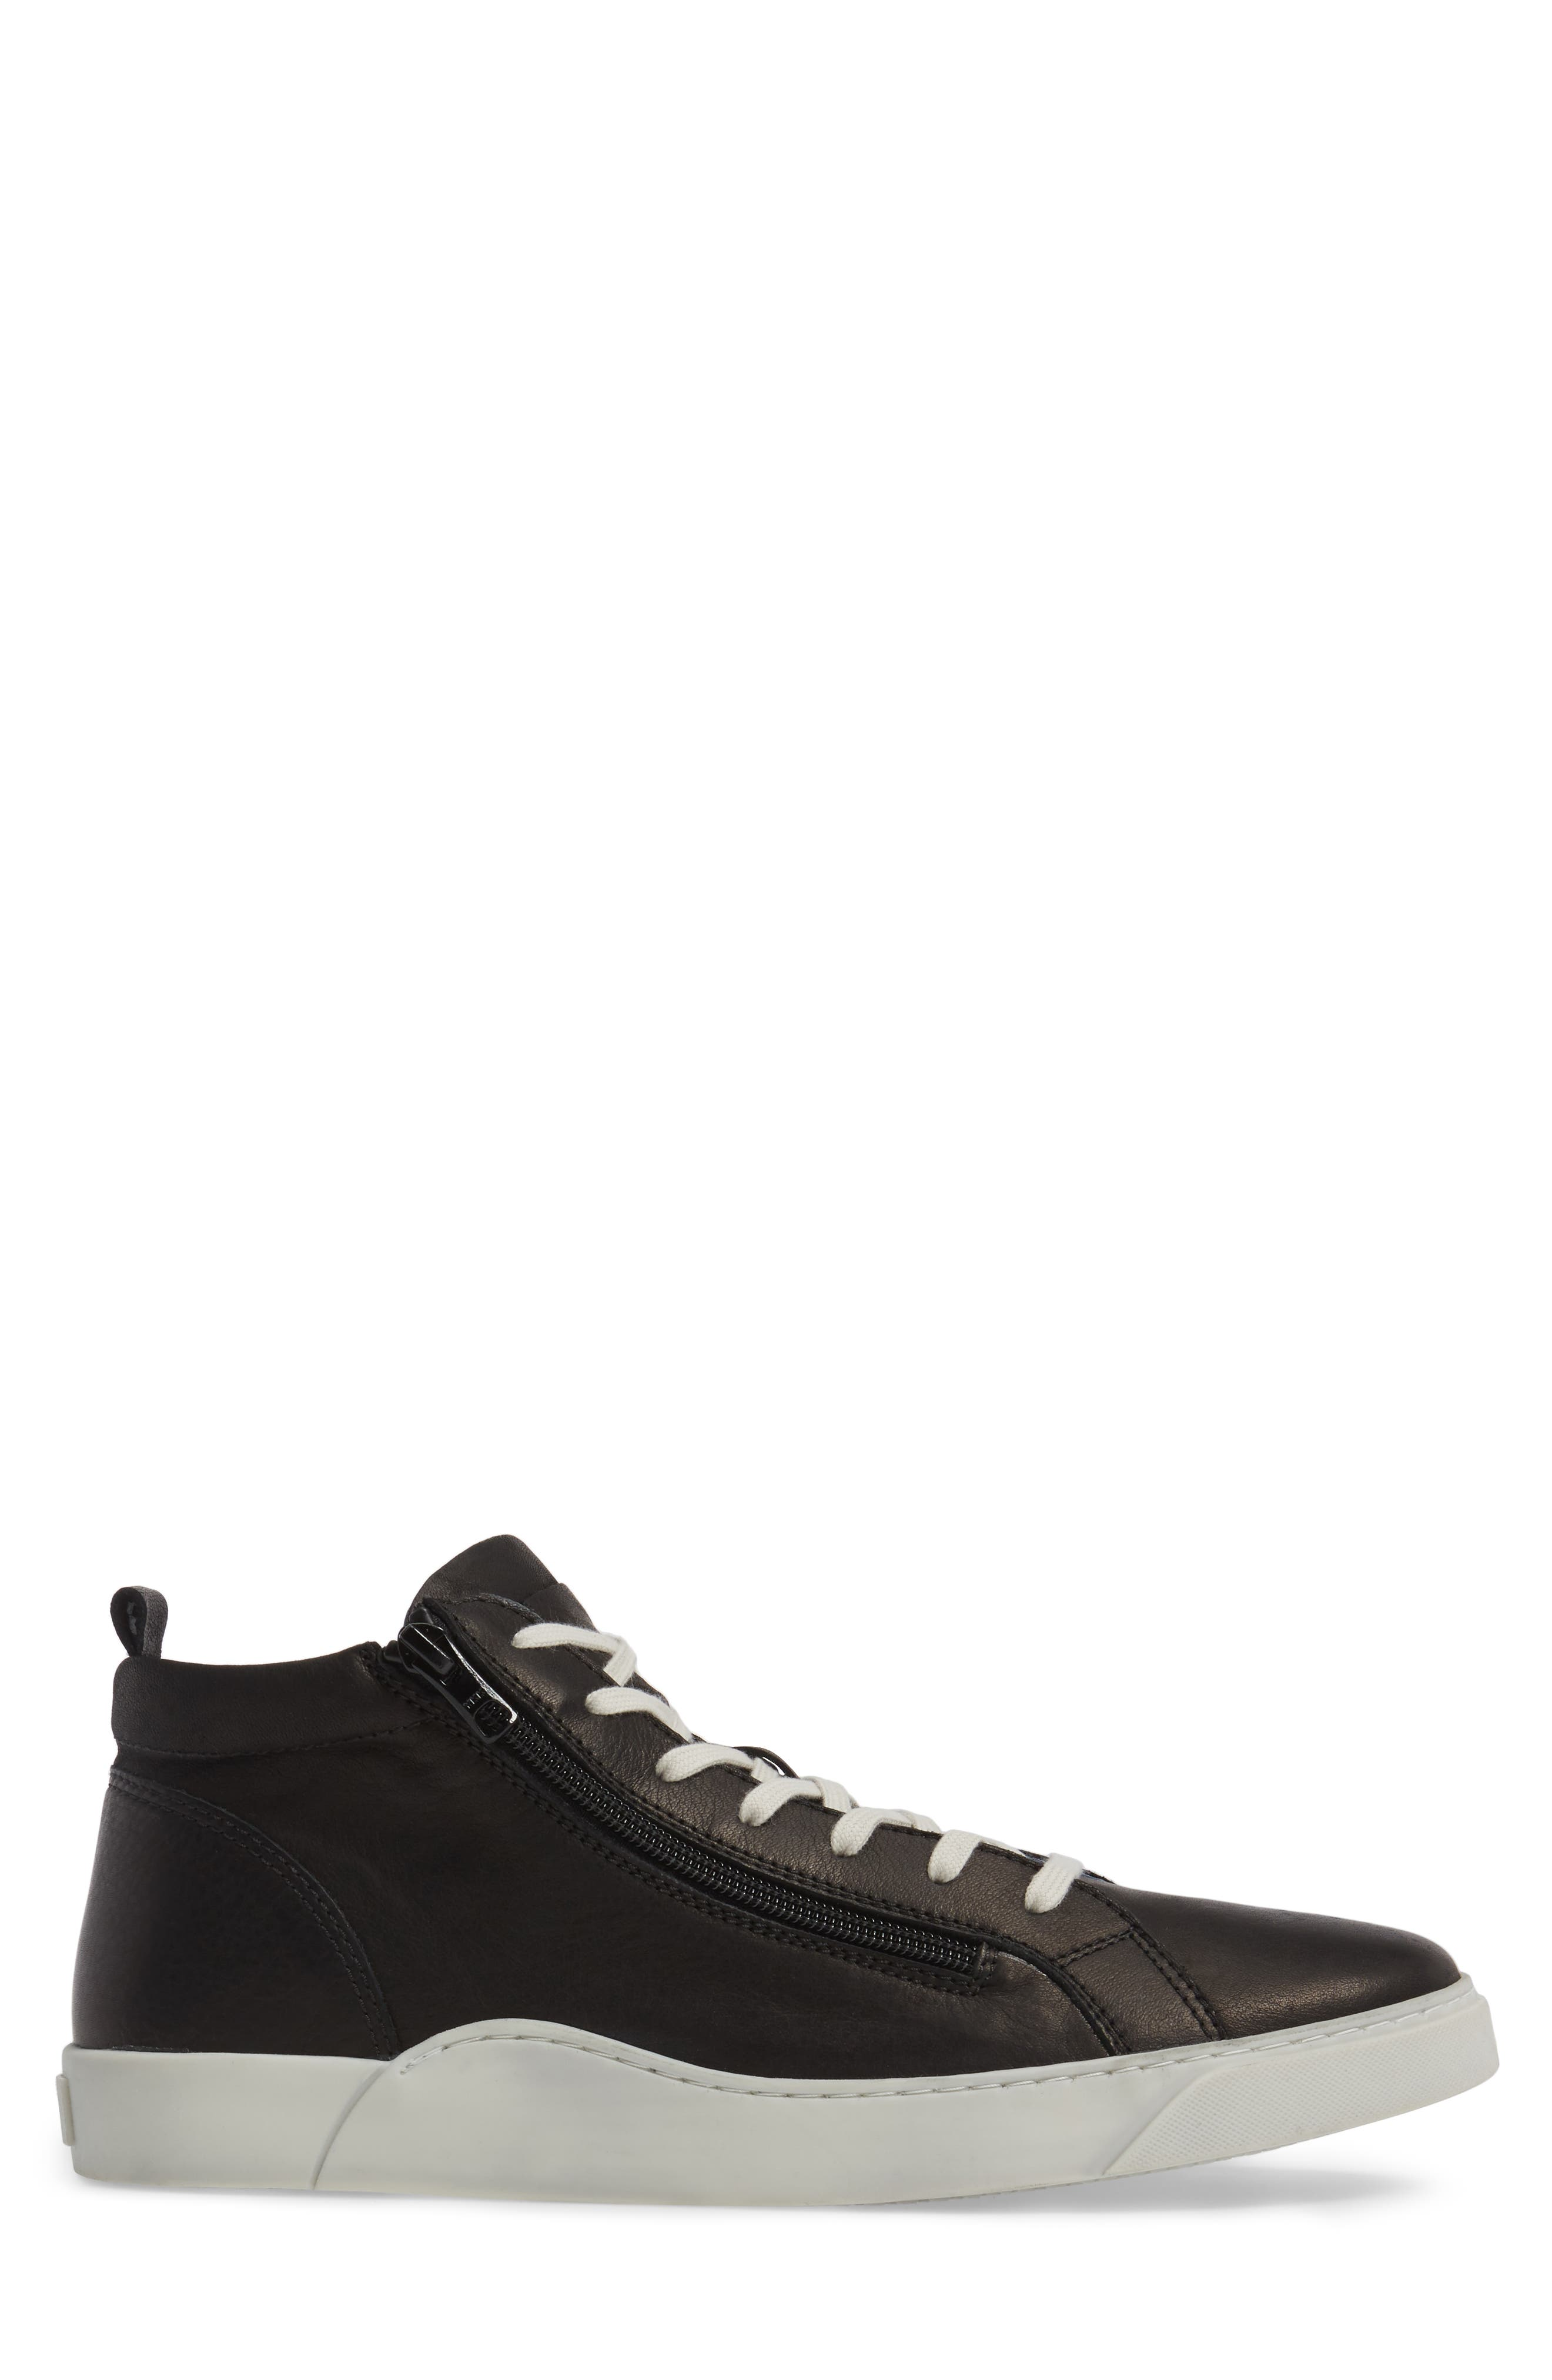 Irwin Mid Top Sneaker,                             Alternate thumbnail 3, color,                             Black Leather